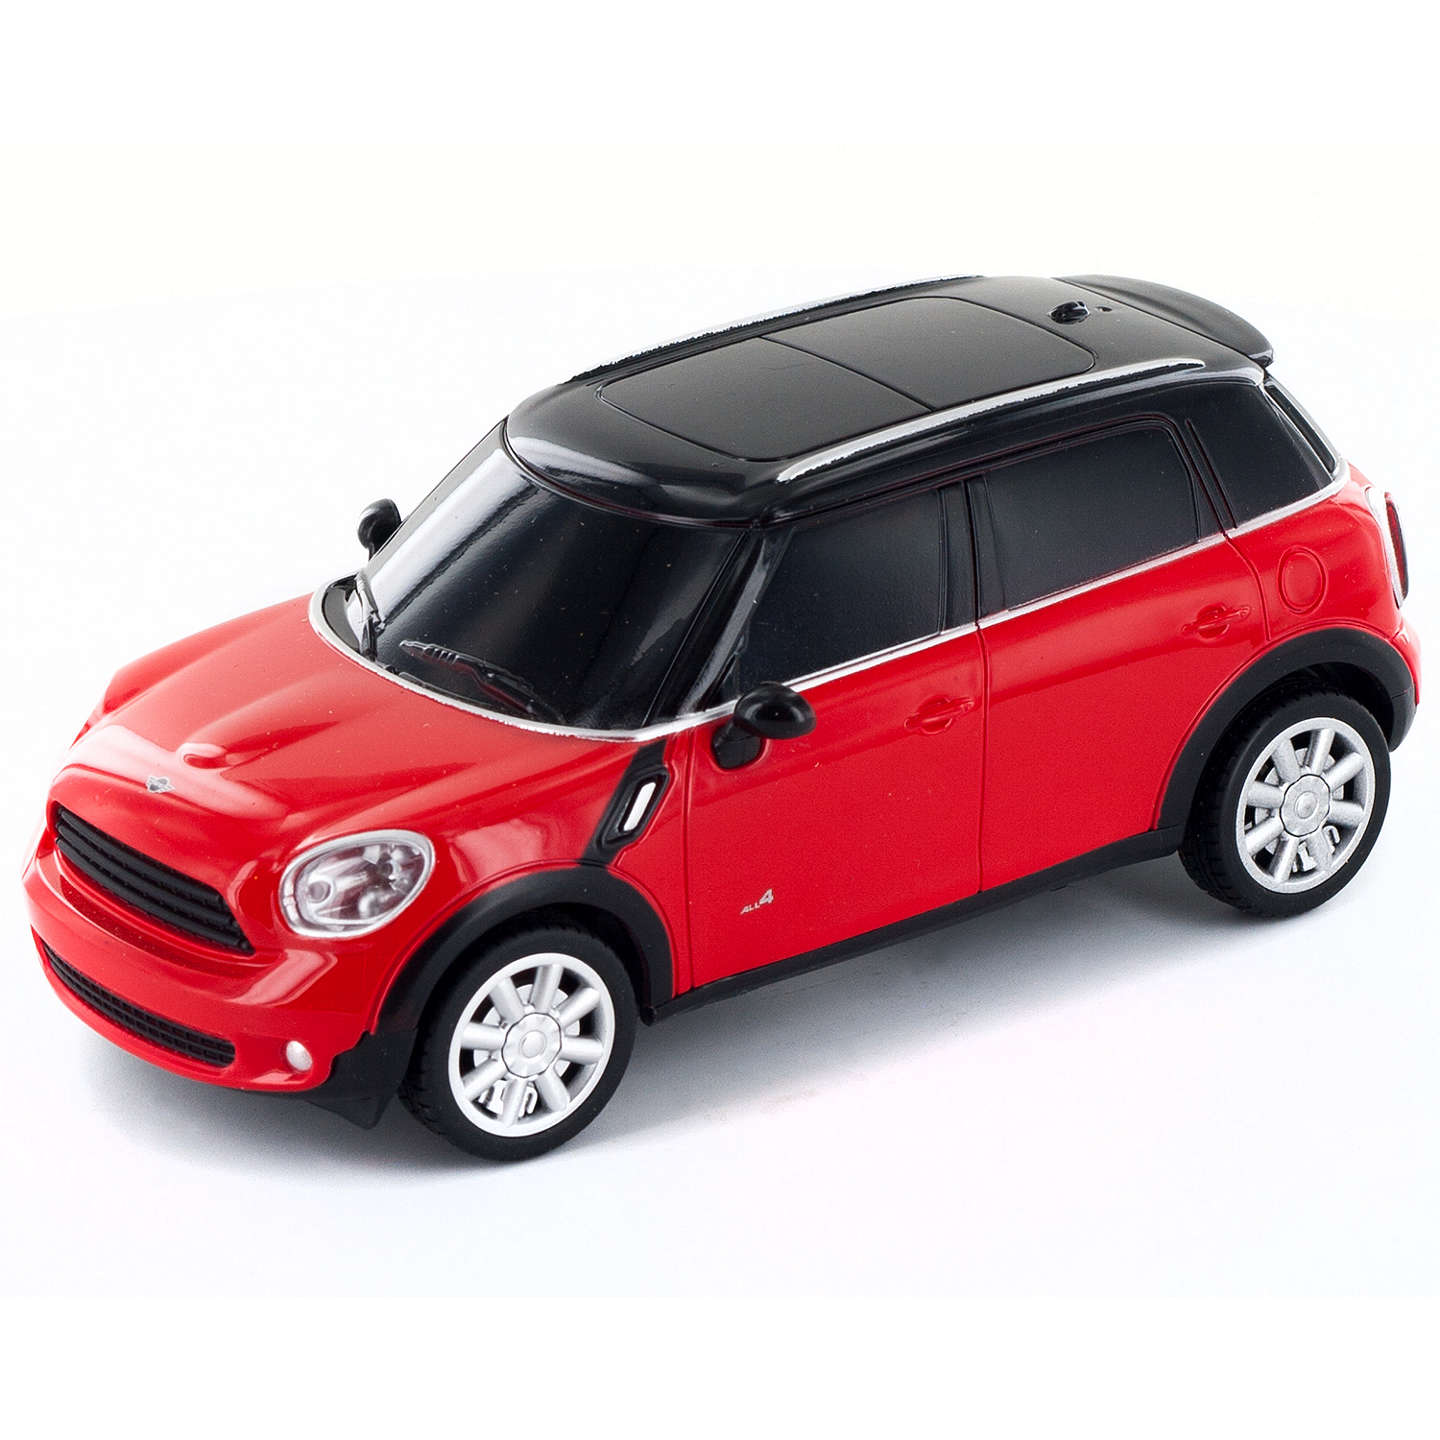 red5 mini cooper remote controlled car at john lewis. Black Bedroom Furniture Sets. Home Design Ideas